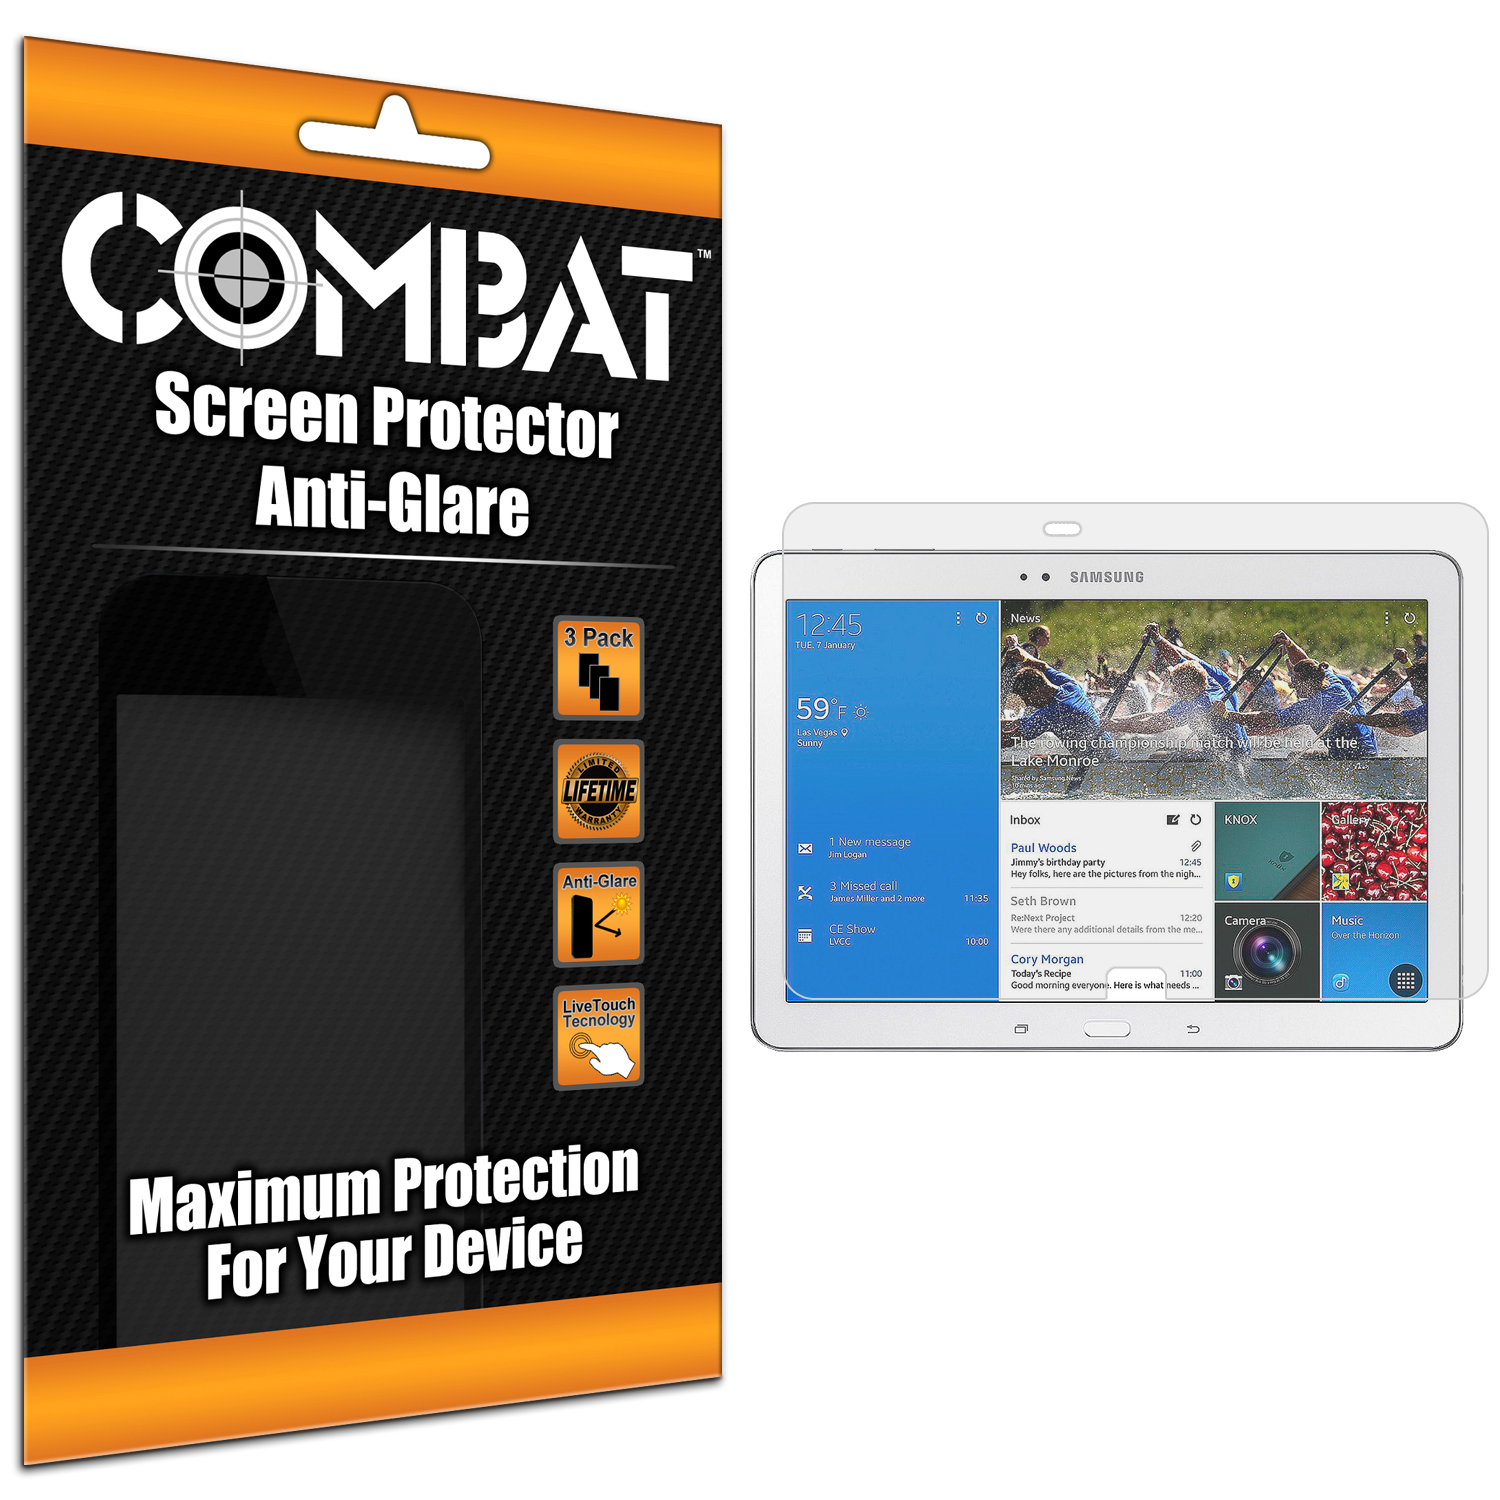 Samsung Galaxy Tab PRO 10.1 Combat 3 Pack Anti-Glare Matte Screen Protector